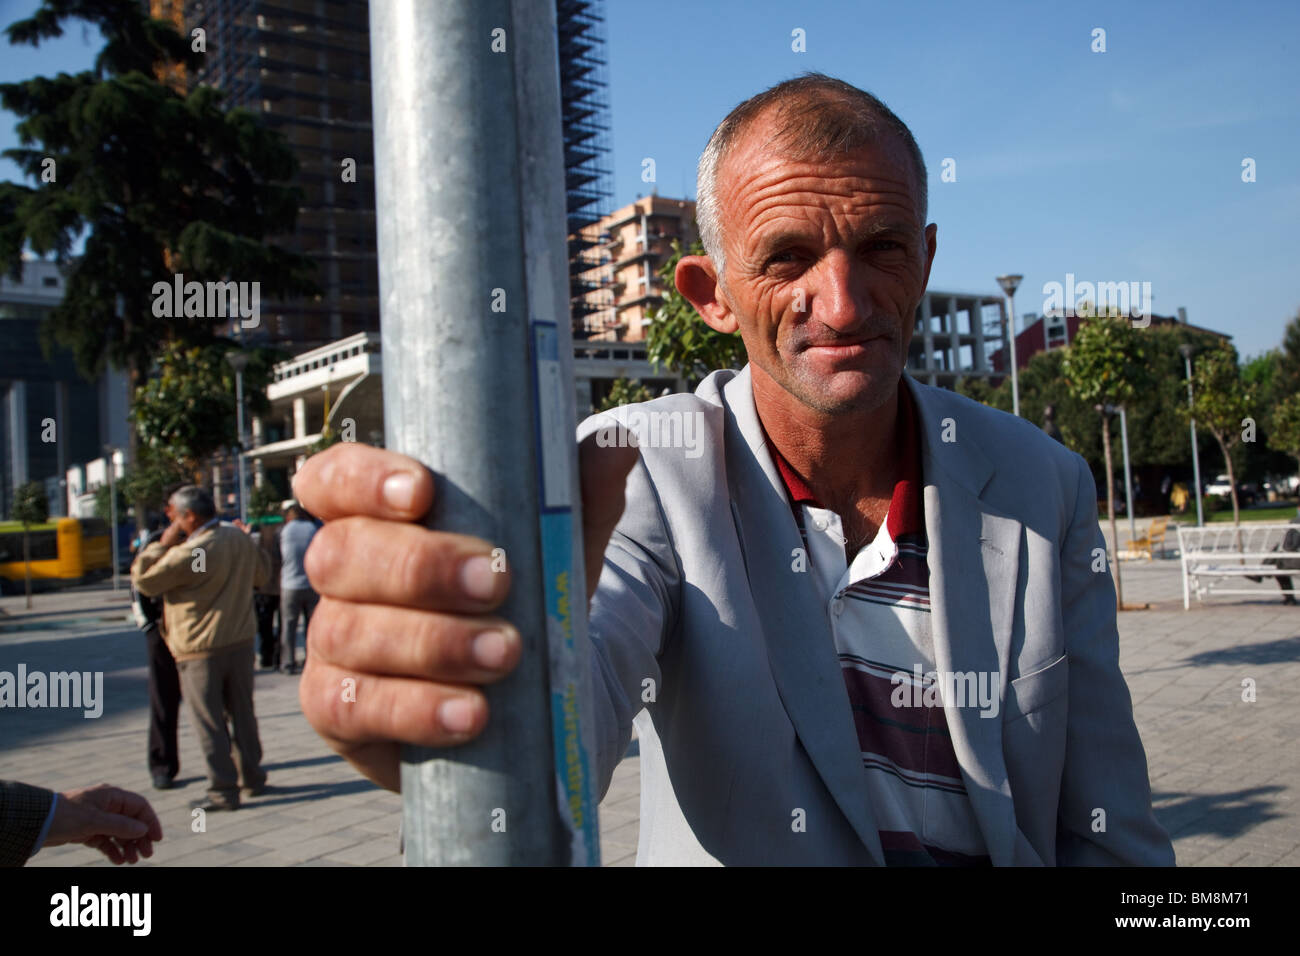 A day worker in Tirana, the capital of Albania. - Stock Image